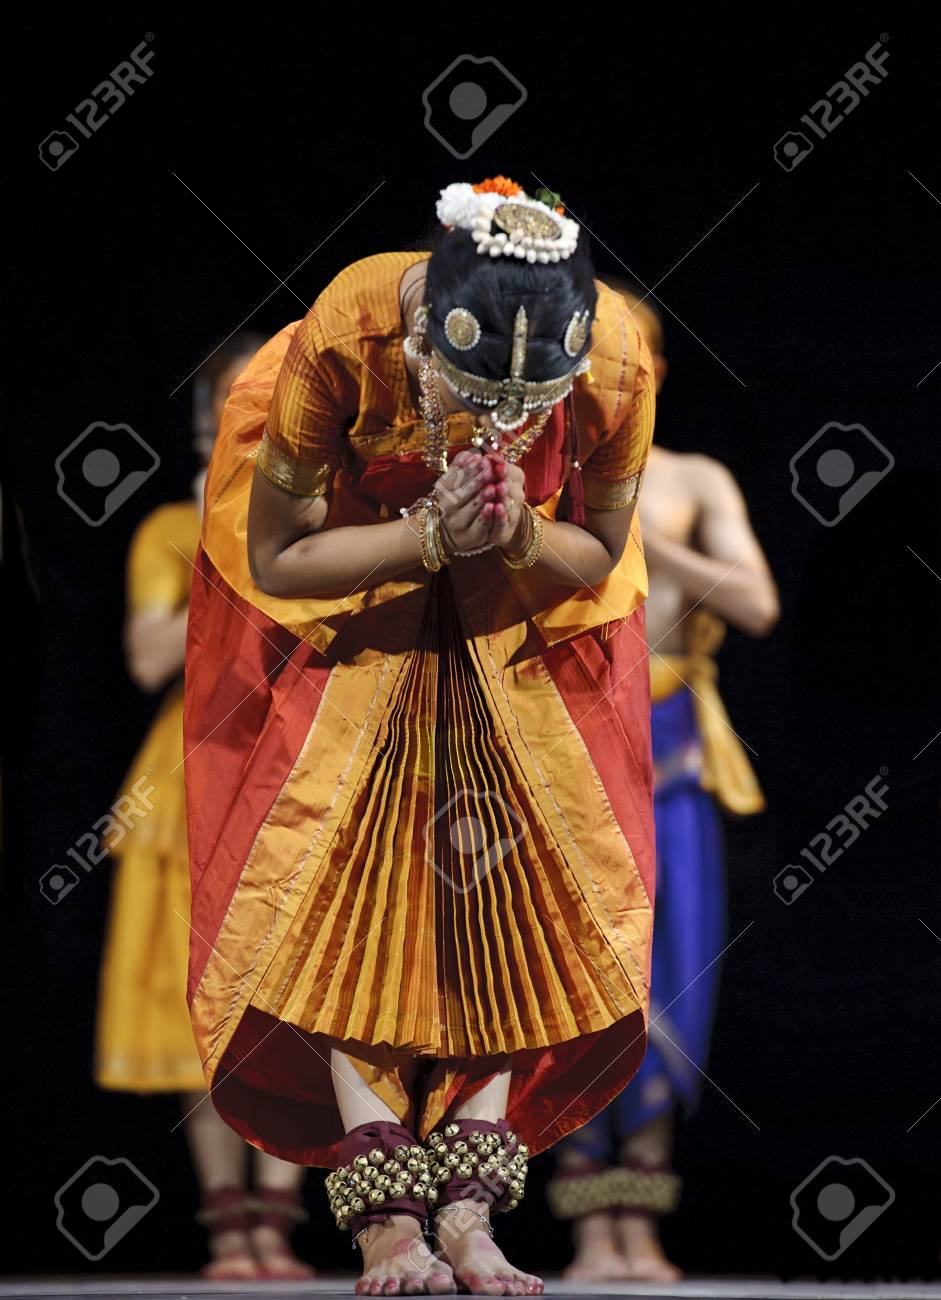 CHENGDU, CHINA - OCT 24,2010: Indian Dancers perform folk dance at JINCHENG theater during the festival of India in china.Oct 24,2010 in Chengdu, China. Stock Photo - 9272403